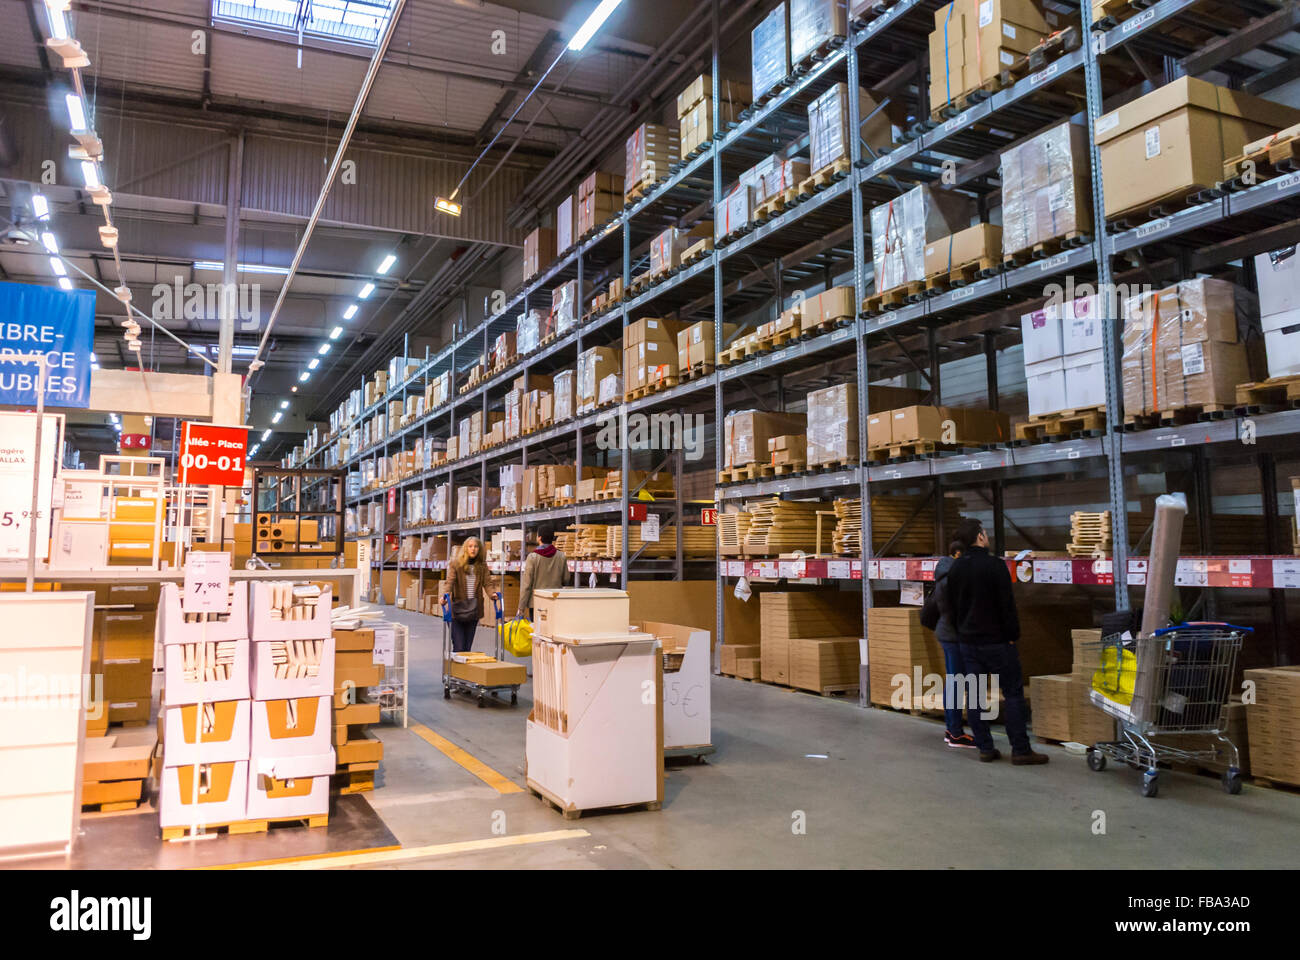 paris france people shopping in modern diy housewares store ikea stock photo 93035221 alamy. Black Bedroom Furniture Sets. Home Design Ideas